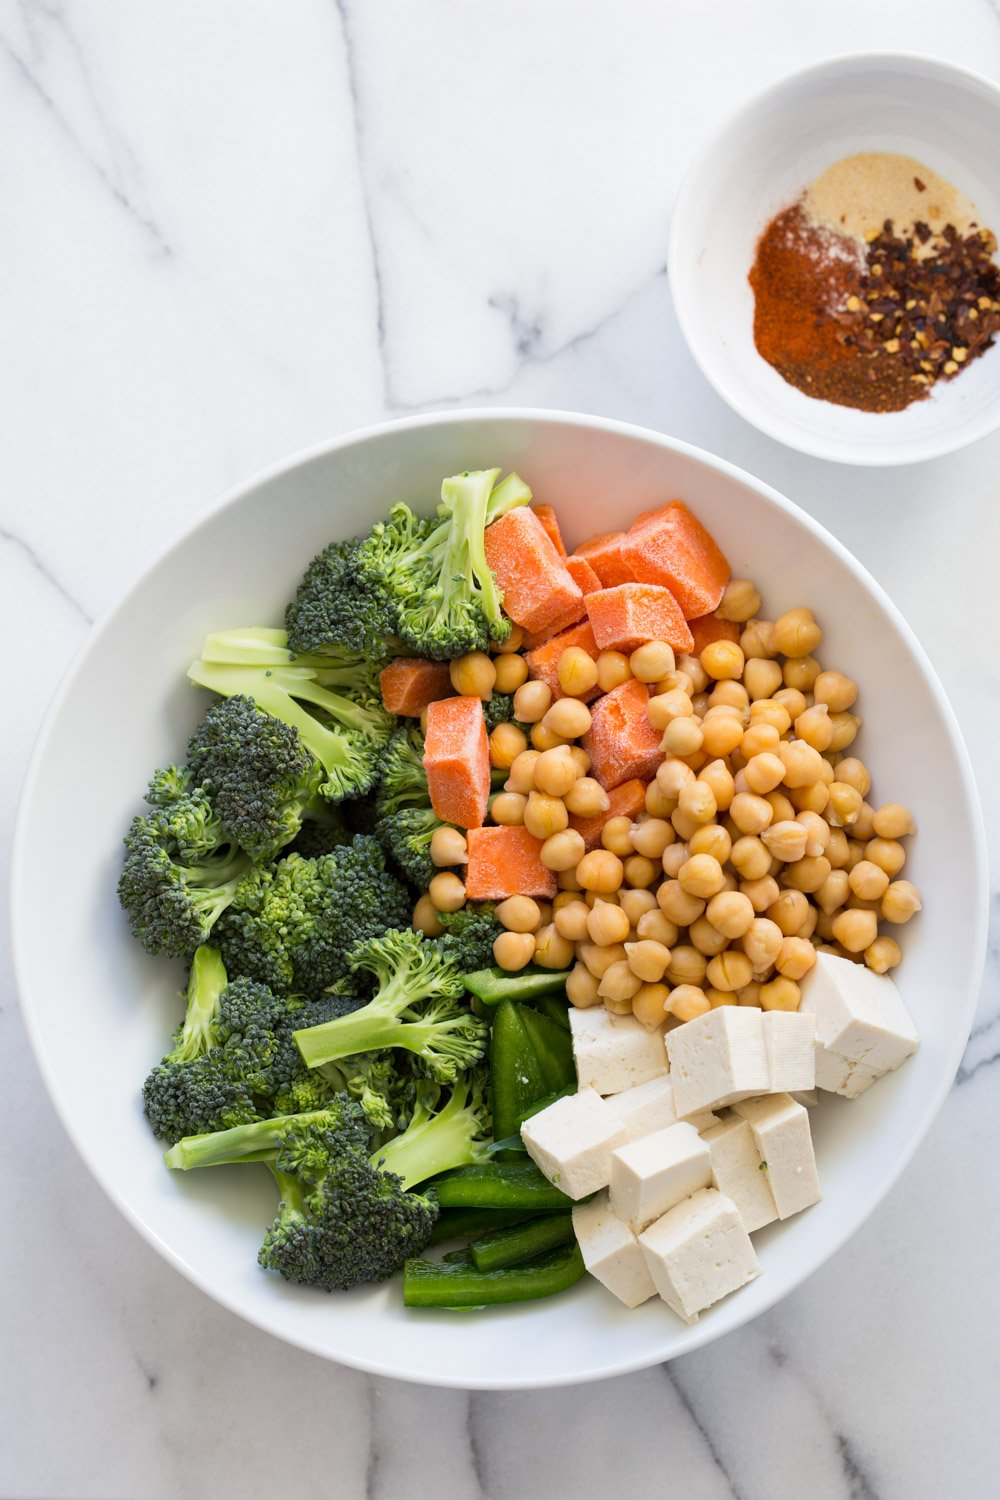 Chickpeas, Tofu, Broccoli, Sweet Potato in a White Bowl with spice bowl on the side